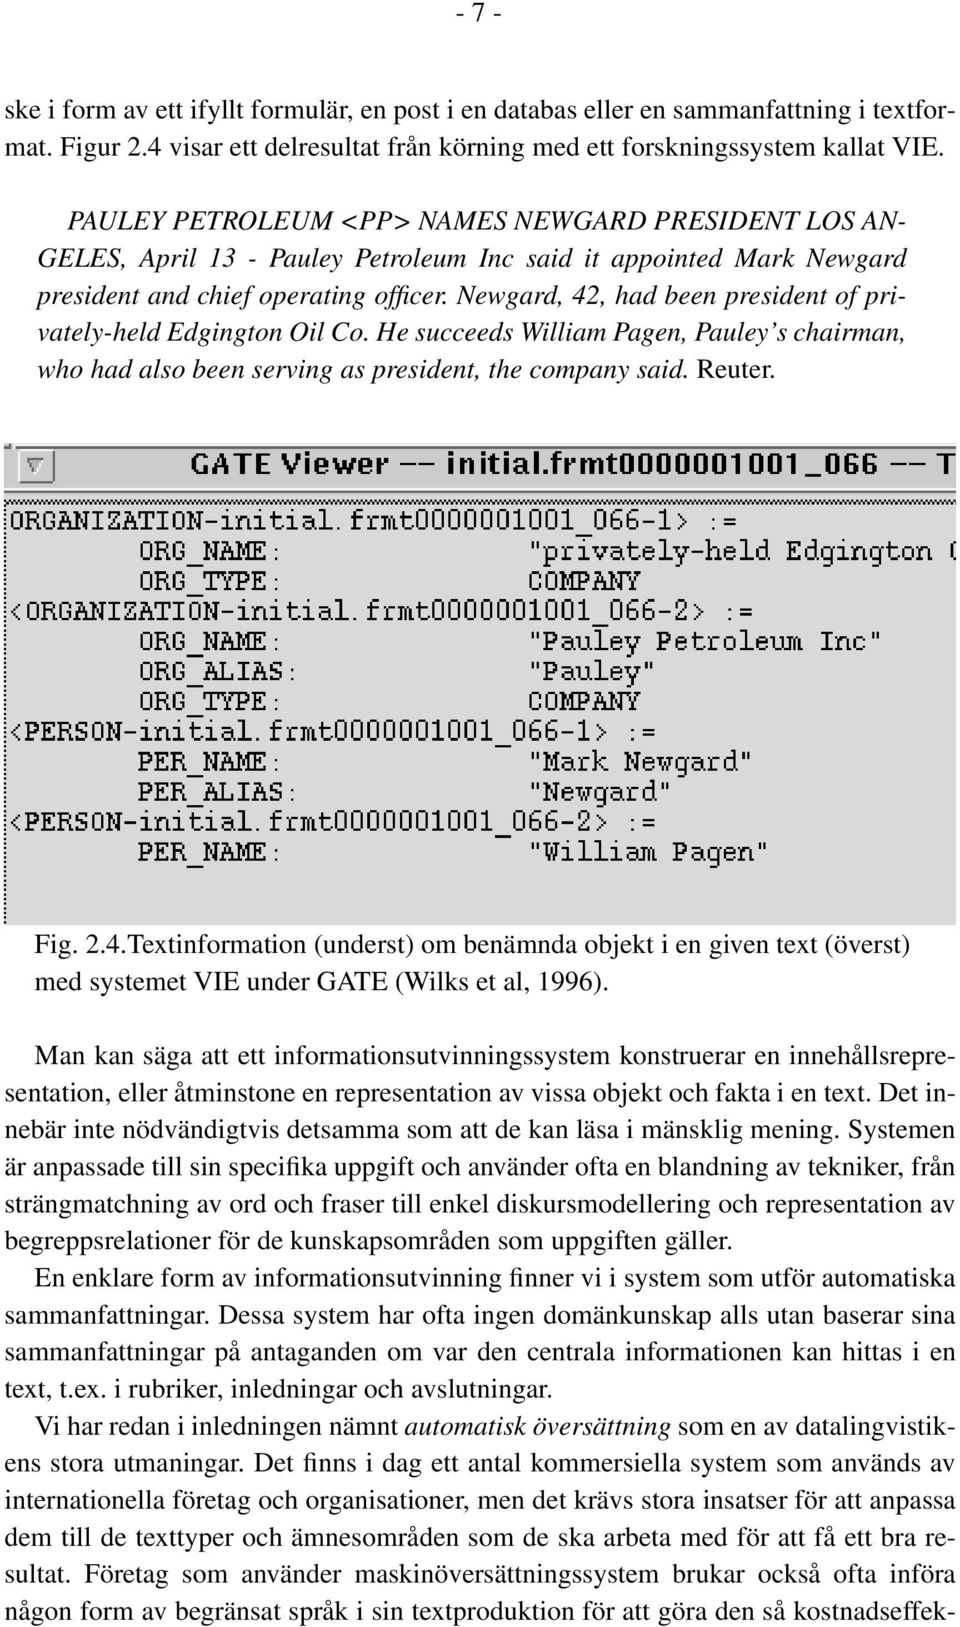 Newgard, 42, had been president of privately-held Edgington Oil Co. He succeeds William Pagen, Pauley s chairman, who had also been serving as president, the company said. Reuter. Fig. 2.4.Textinformation (underst) om benämnda objekt i en given text (överst) med systemet VIE under GATE (Wilks et al, 1996).